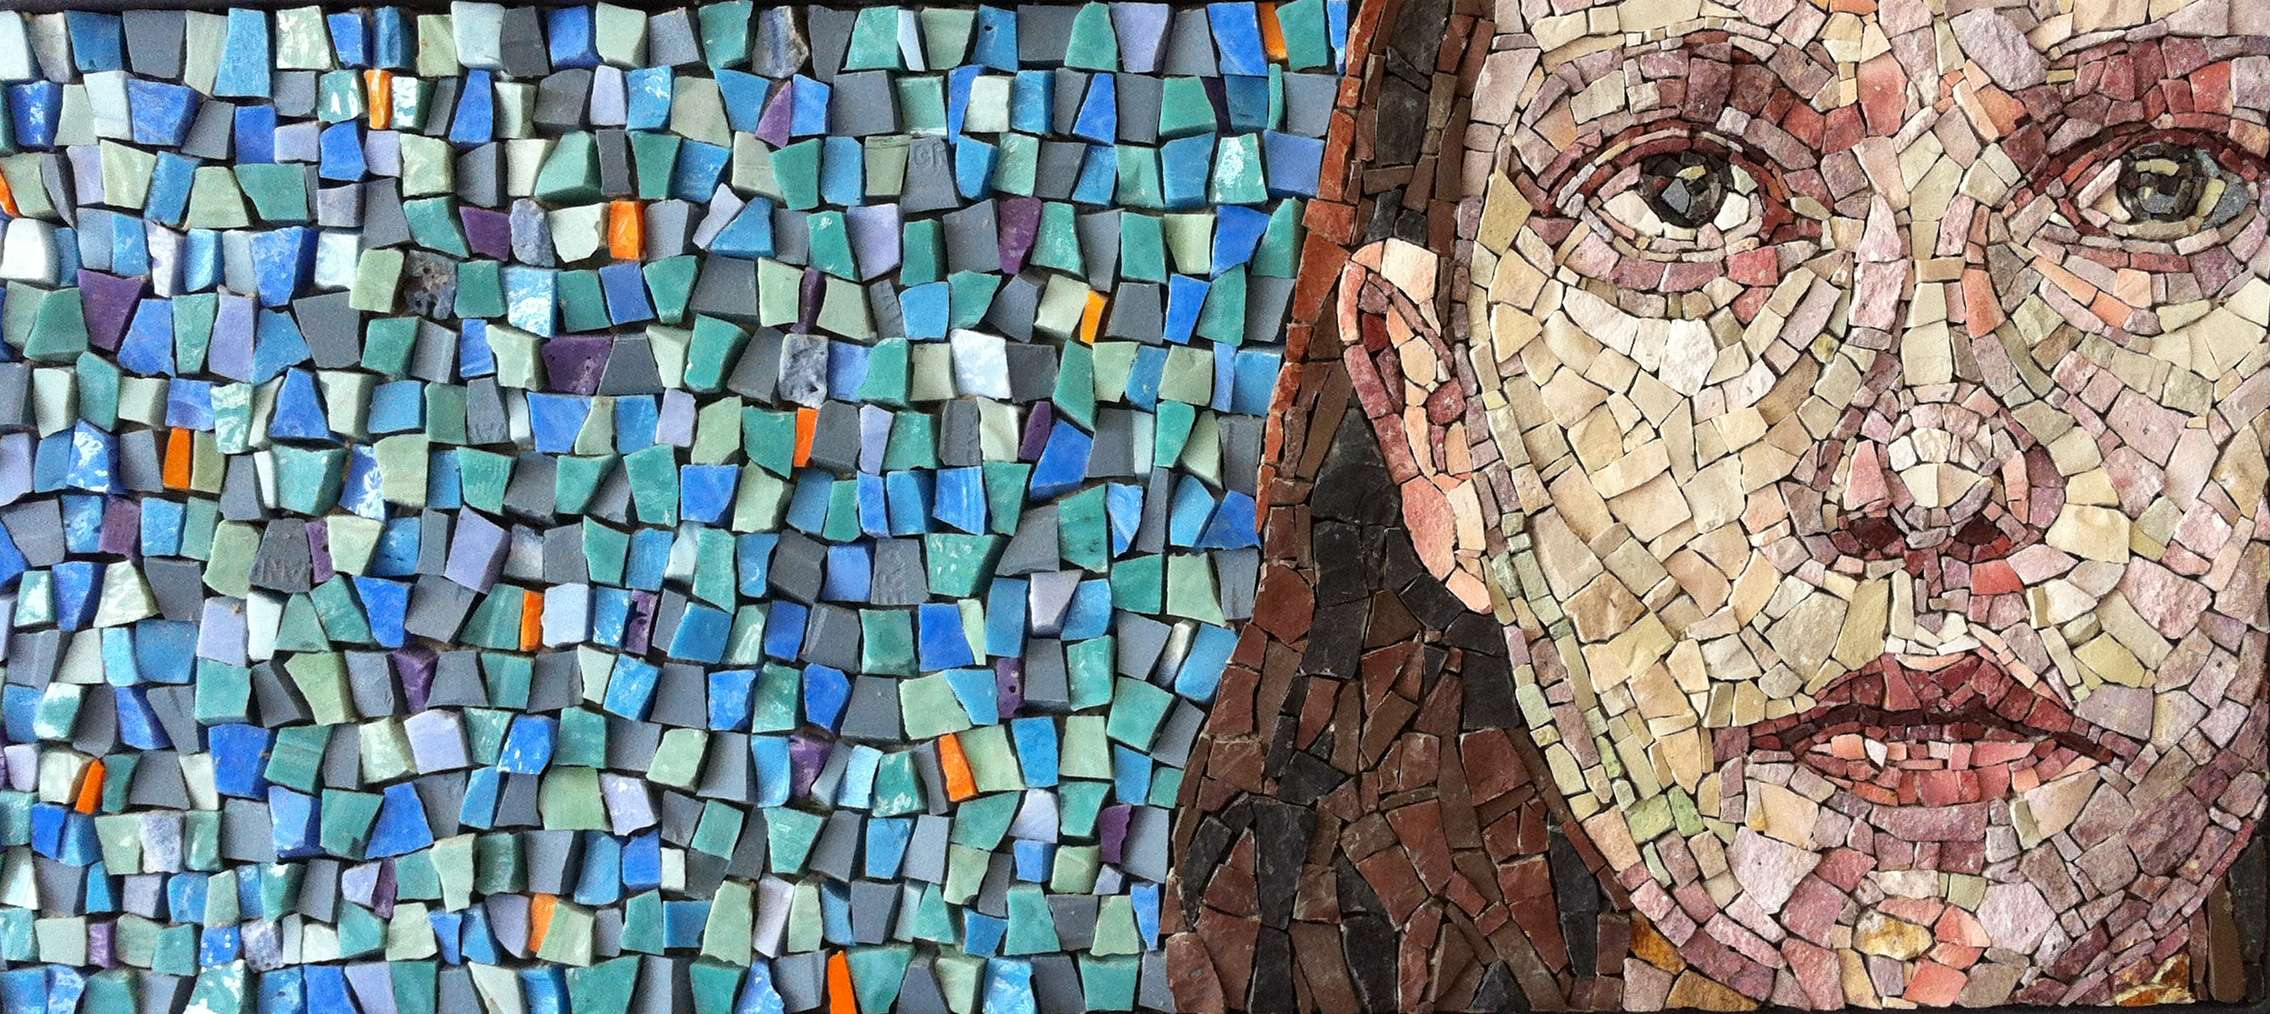 Mosaic-Designs-Portrait